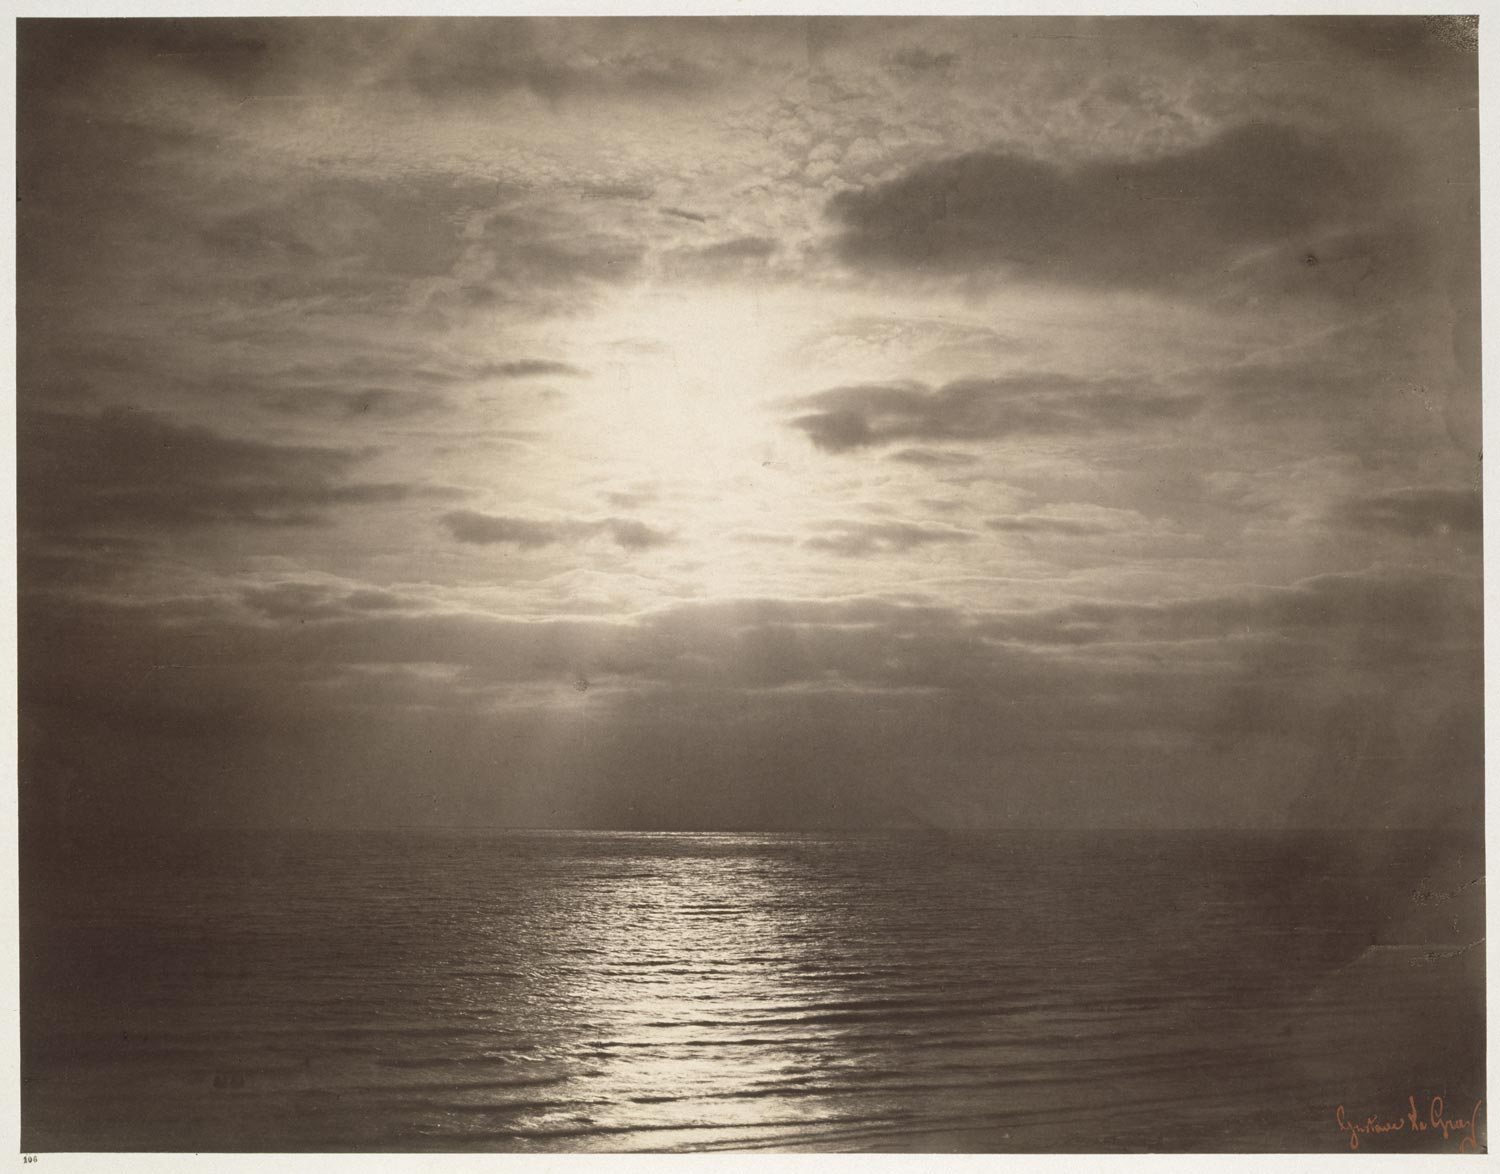 black and white photograph of seascape